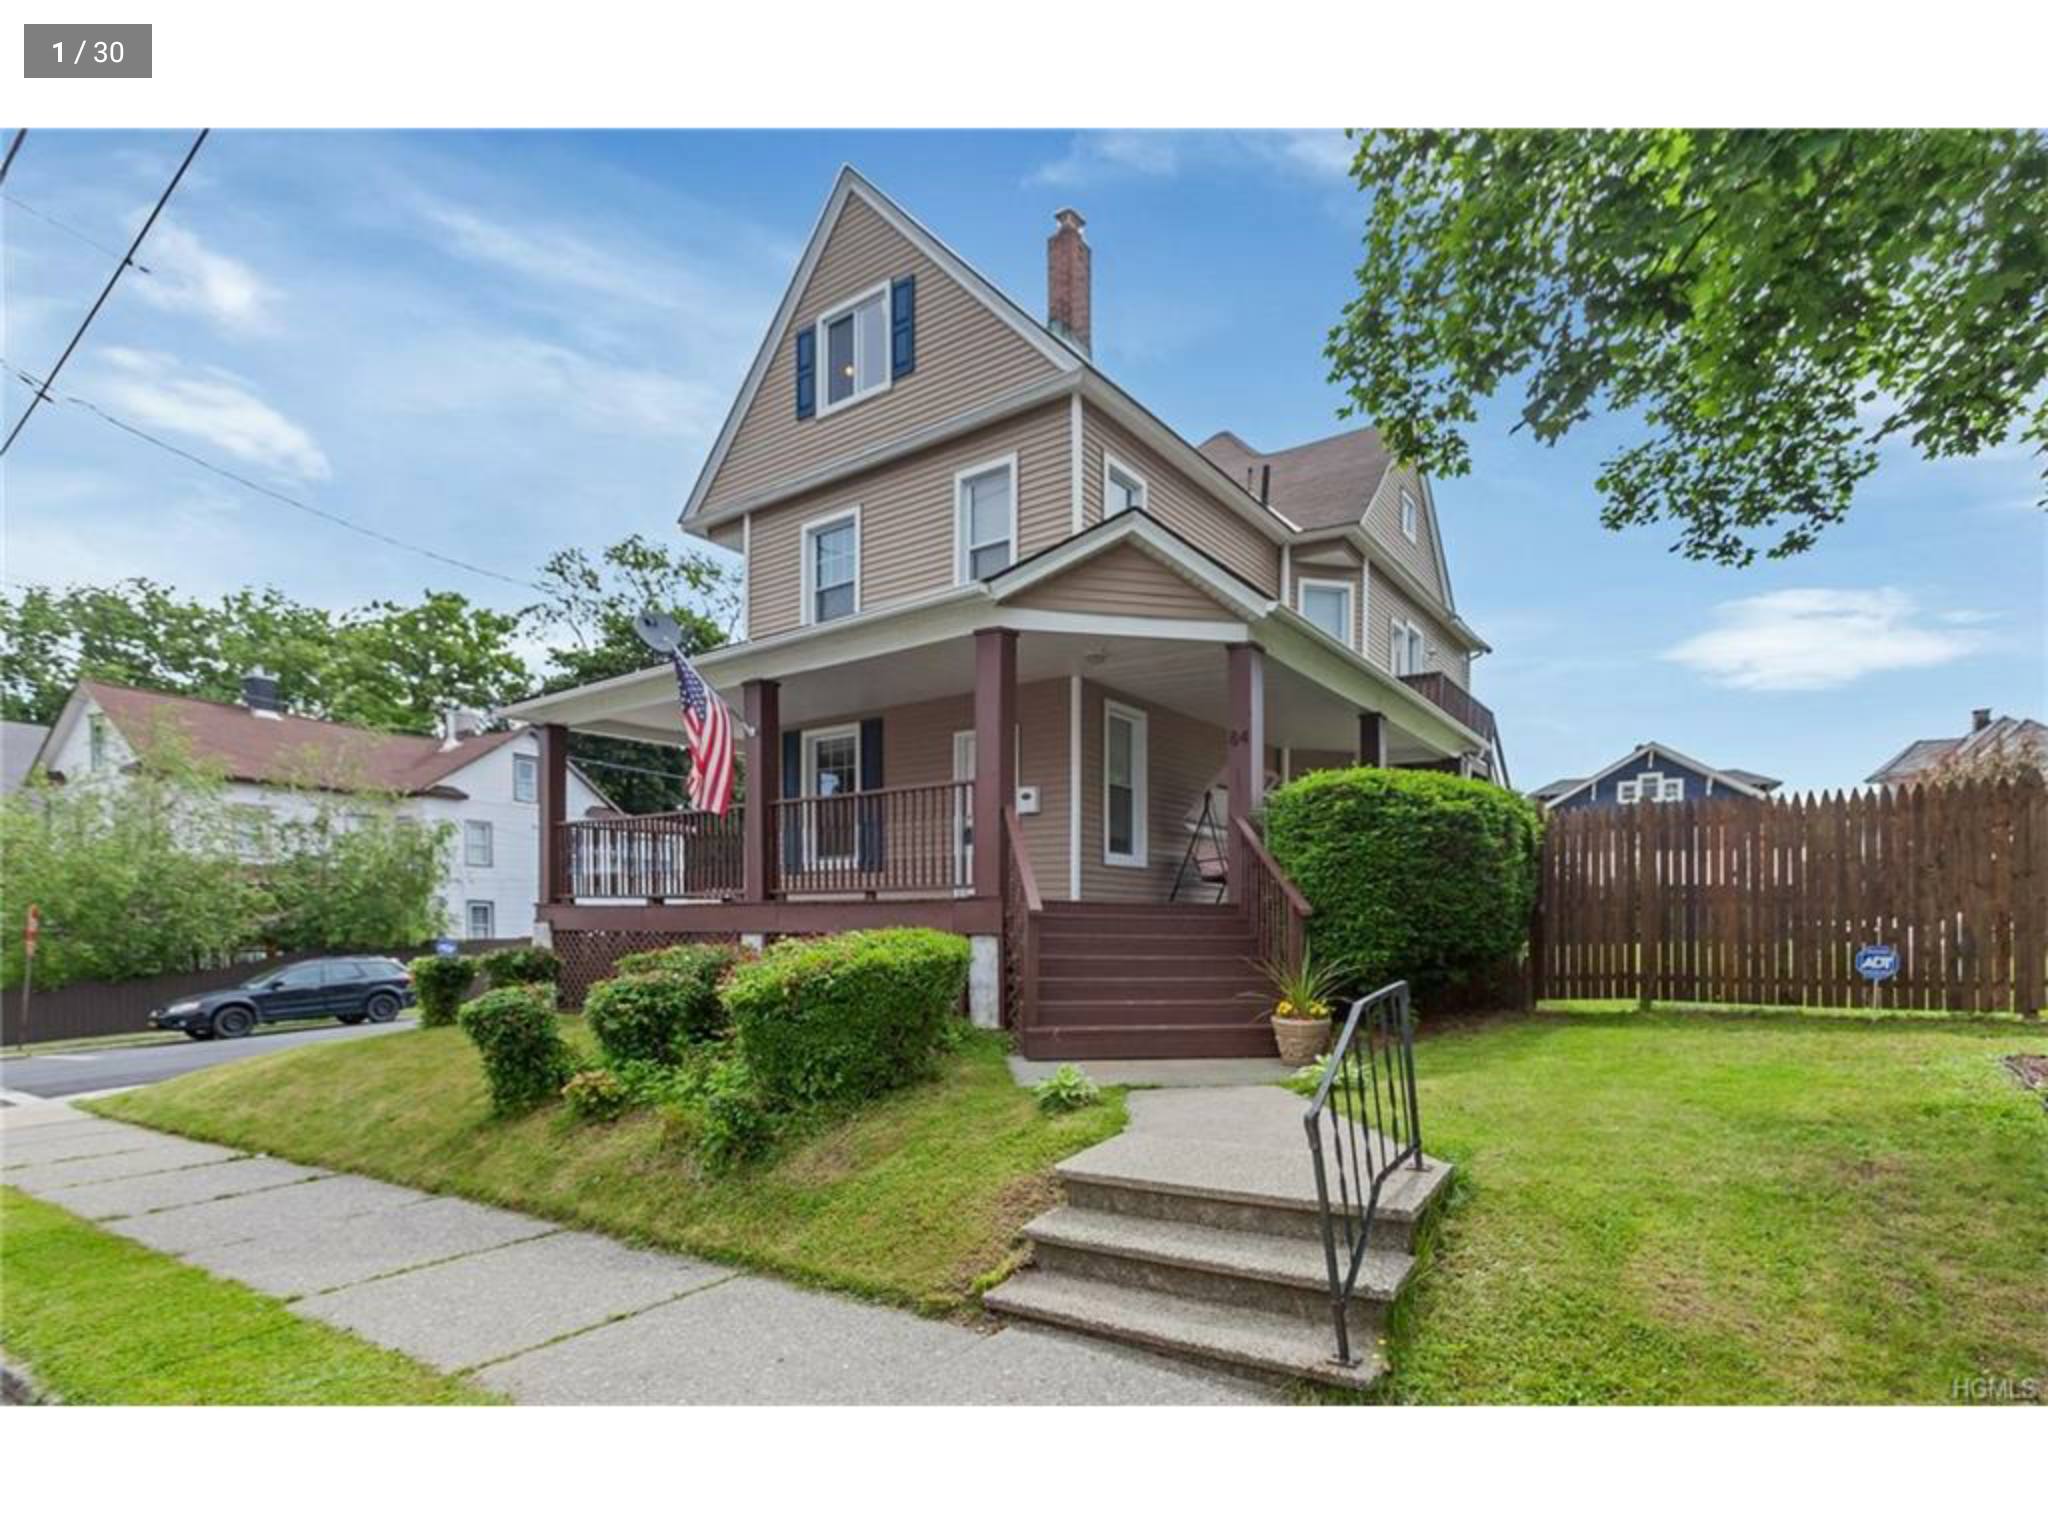 84 Grand Ave, Middletown NY 10940